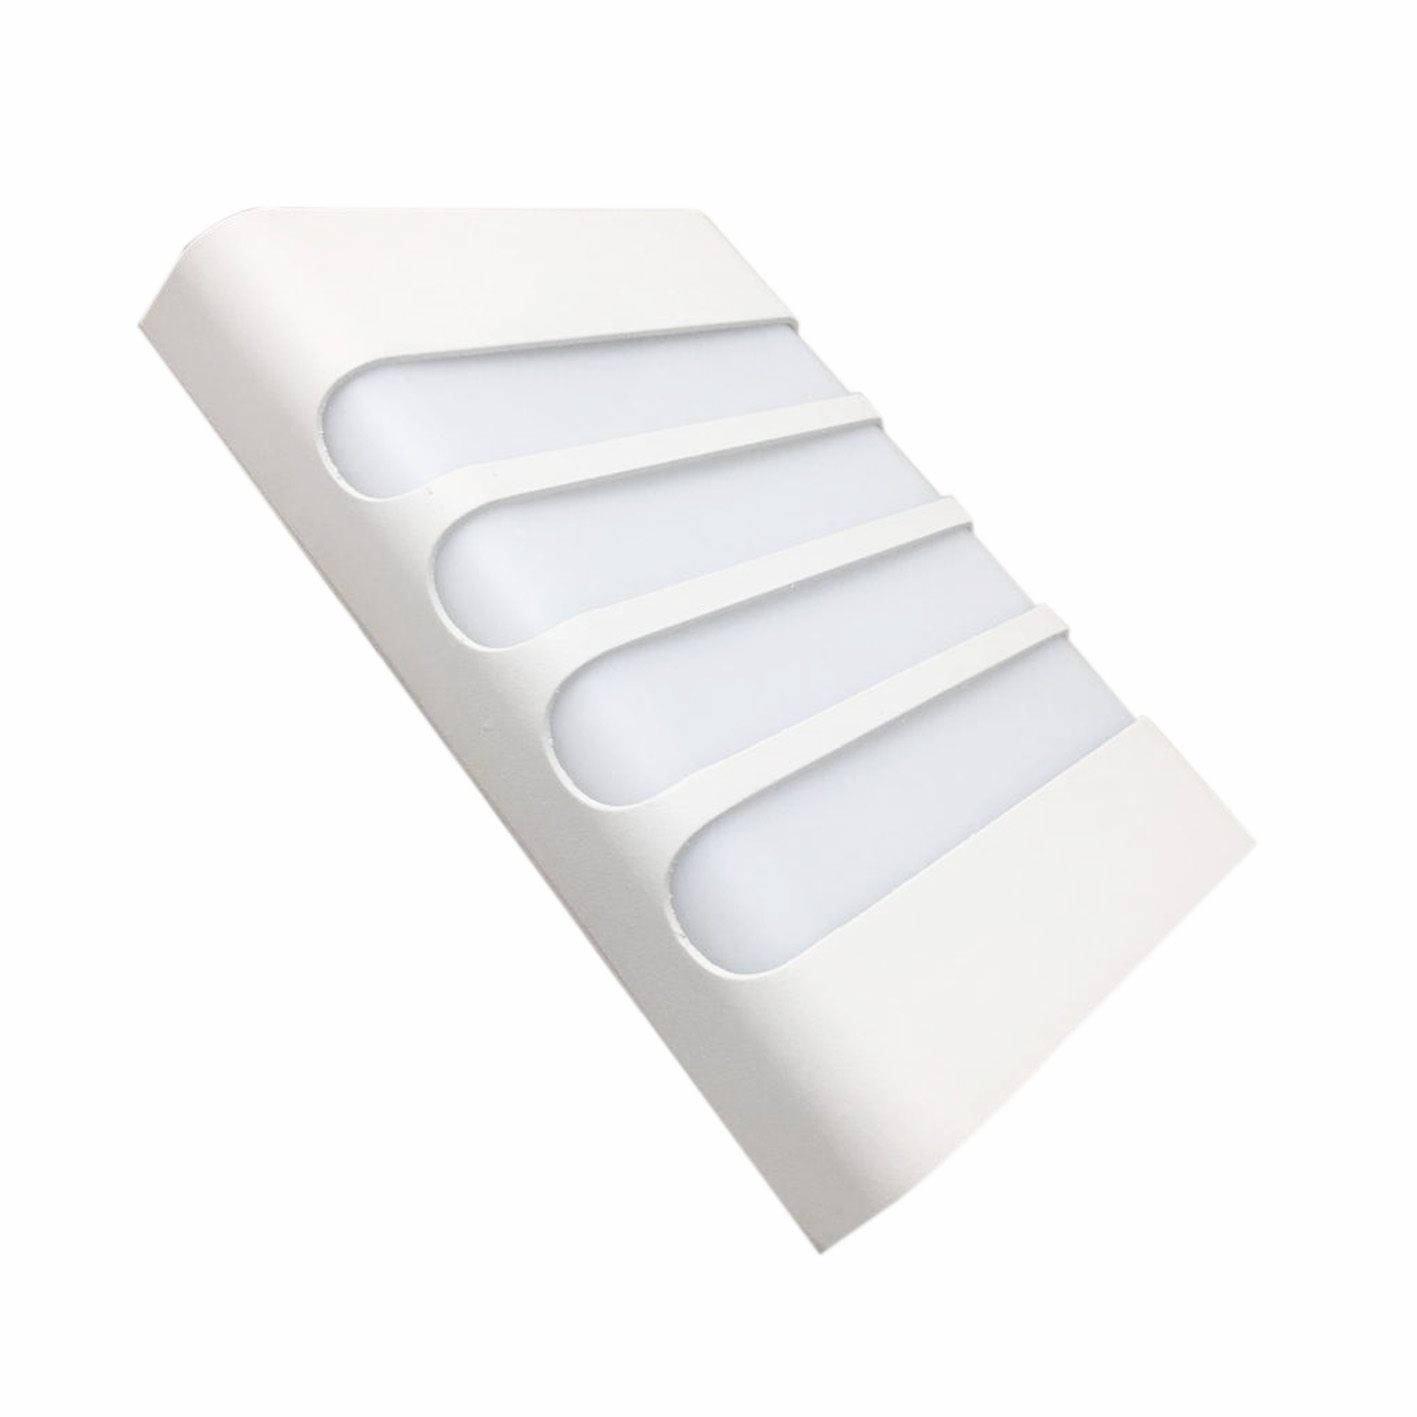 Wall lamp LED 18w dual beam stripes color white IP44 B57-18W